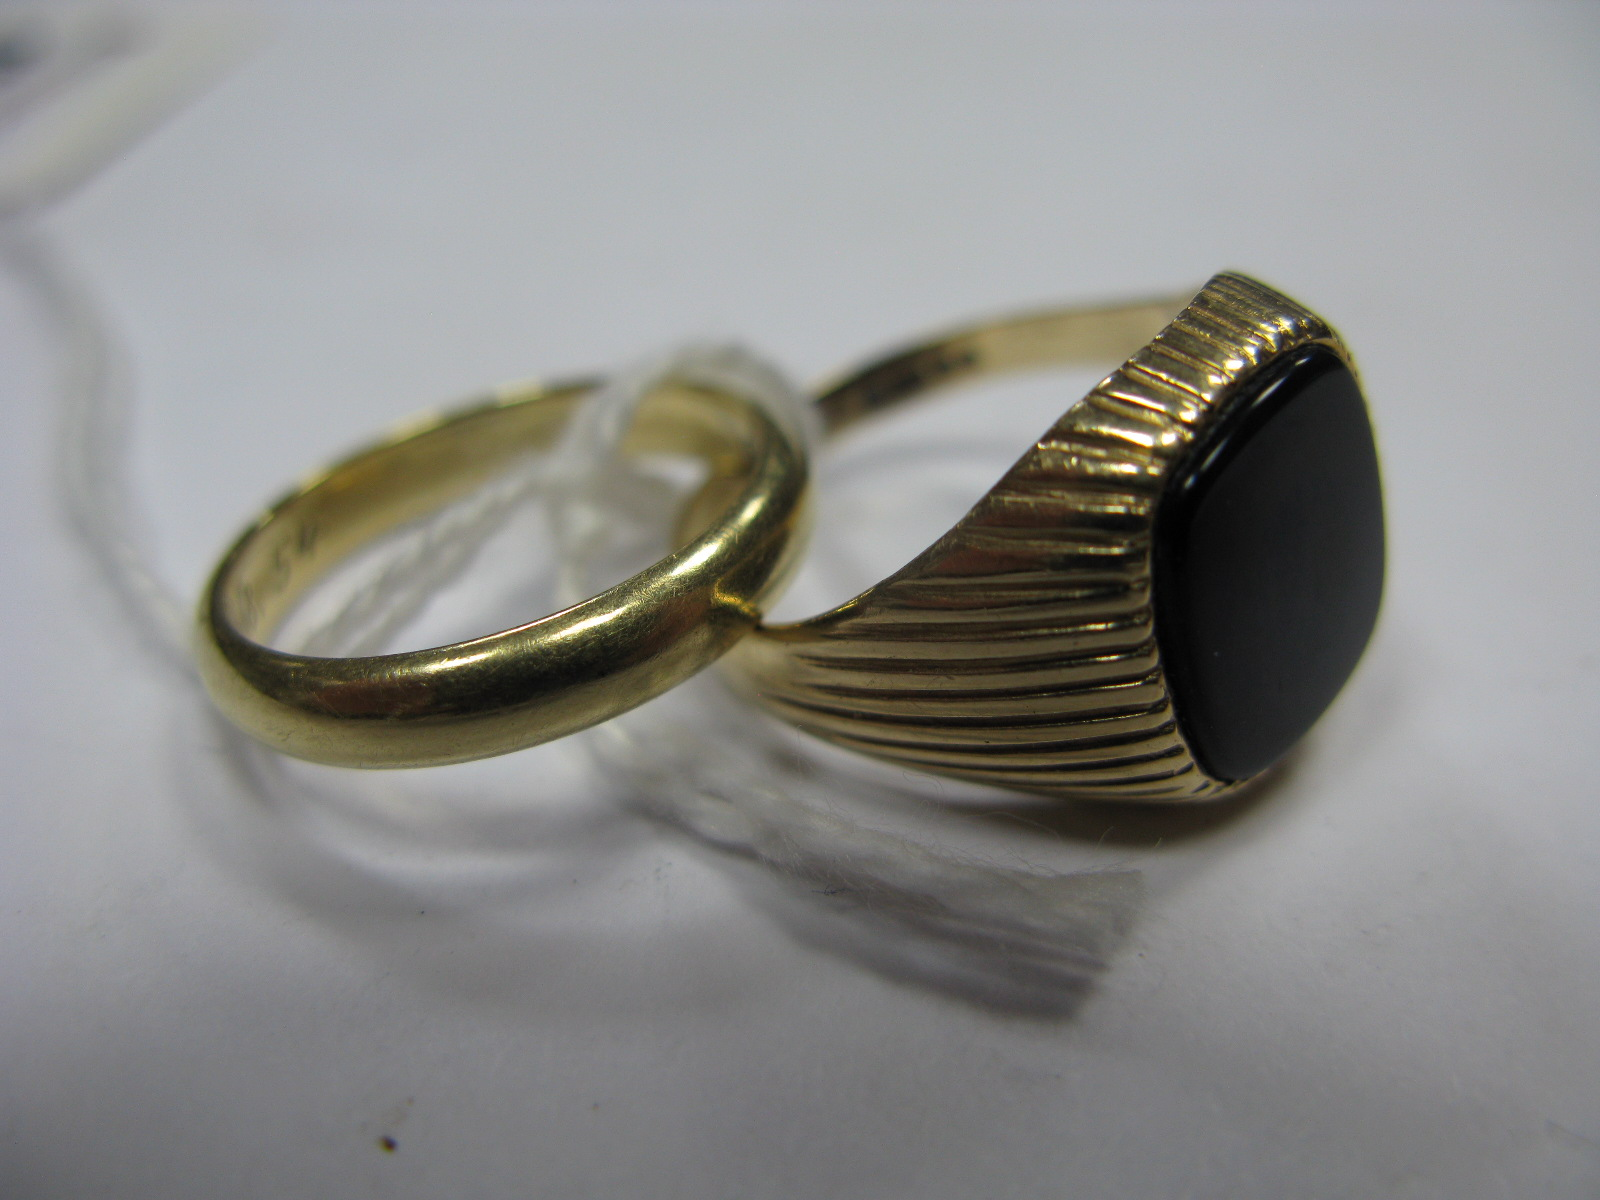 Lot 1344 - A Gent's 9ct Gold Ring, with inset cushion shape panel, between reeded shoulders; together with a